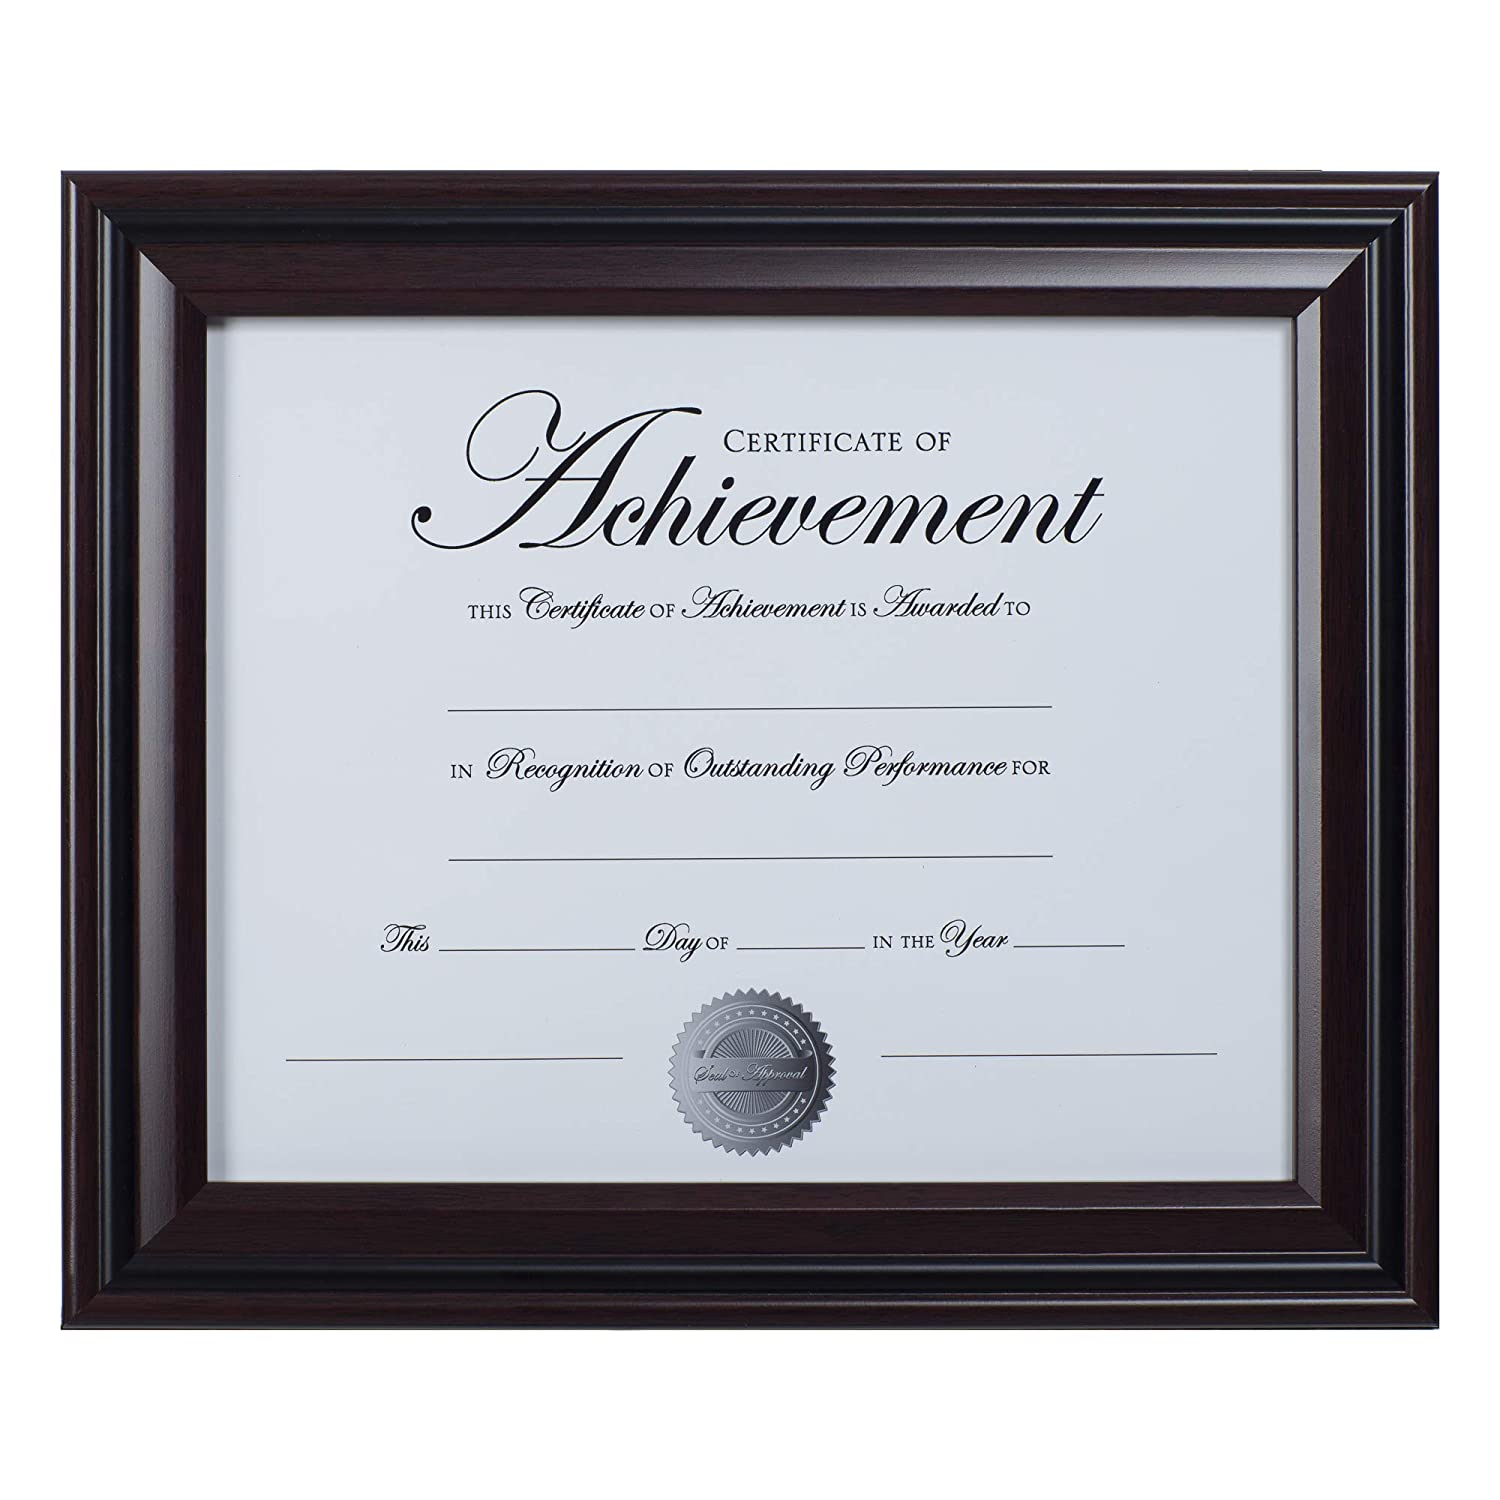 Dax 8.5x11 Classic Rosewood and Black Document Frame, Wall or Table Top Display NBG Home N15786NT DOBA-DAXN15786NT